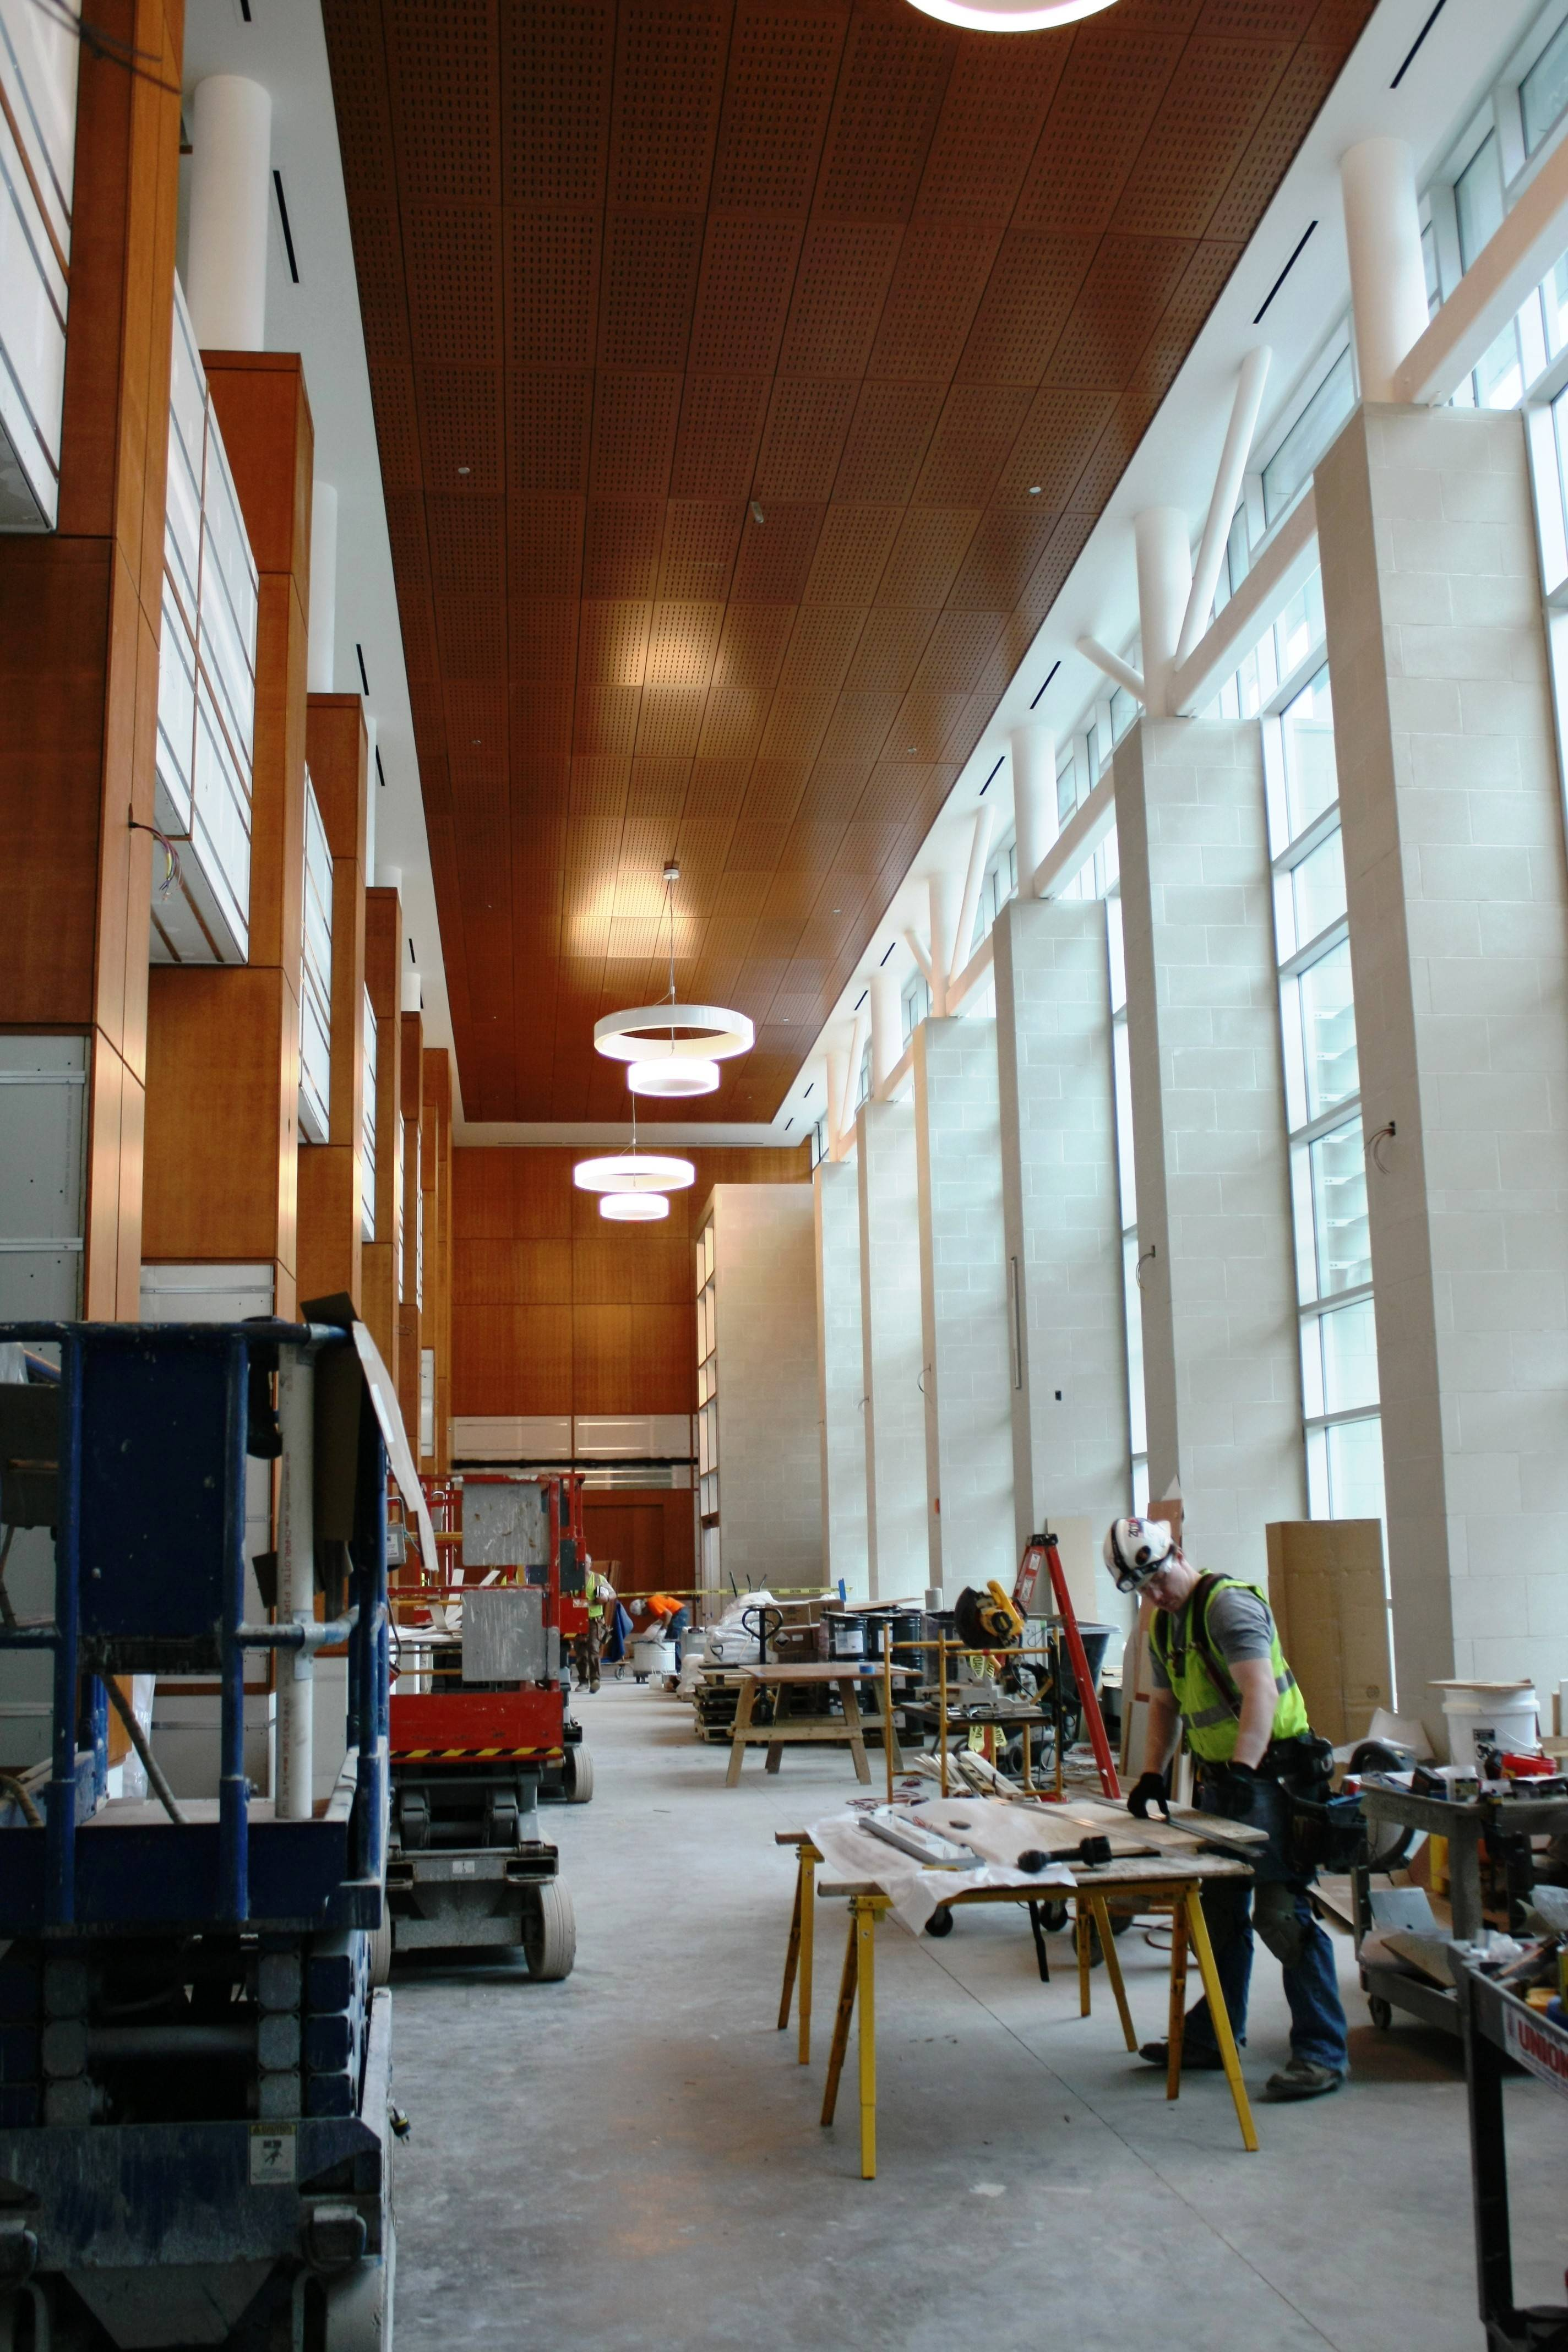 Workers continue putting the finishing touches on the lobby of Aurora's new Richard and Gina Santori Public Library in downtown.